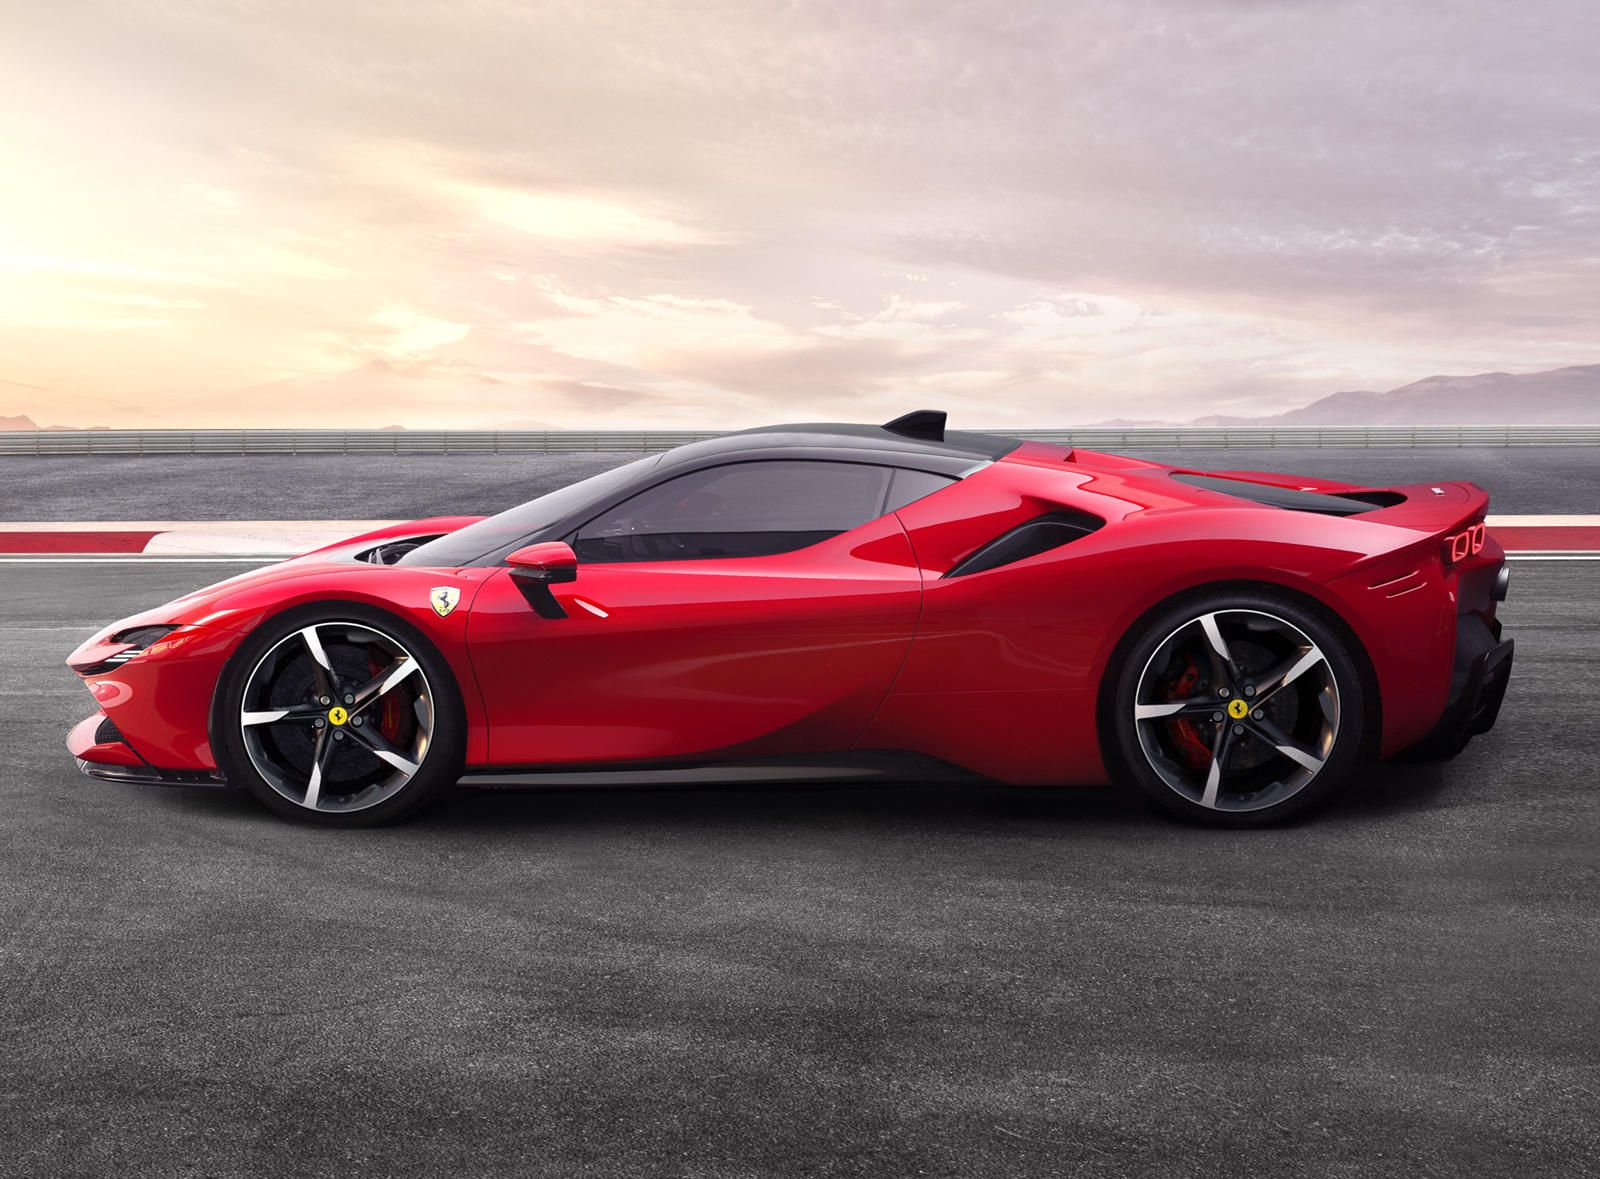 Ferrari Reminds The World Why It Builds The Best Supercars Today S Example The Sf90 Stradale In 2020 New Ferrari Super Cars Ferrari